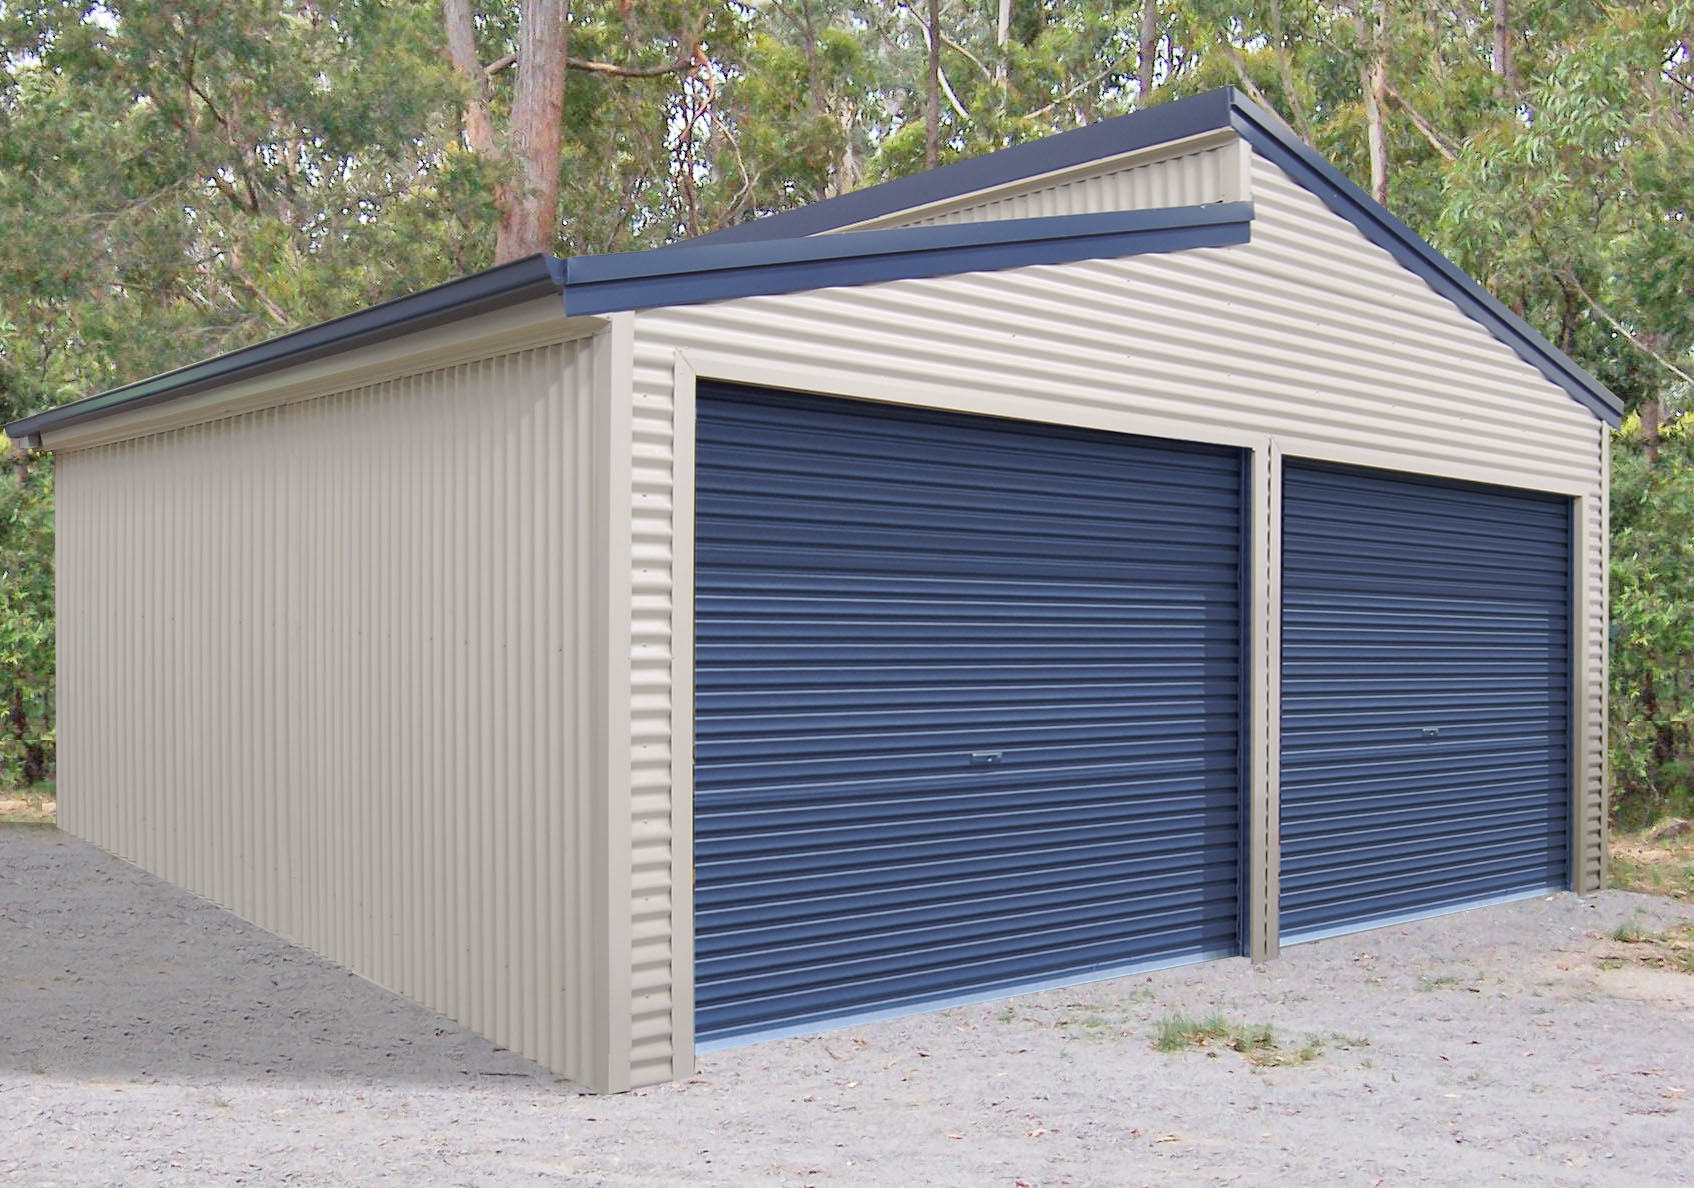 Garages shed master sheds Design shed